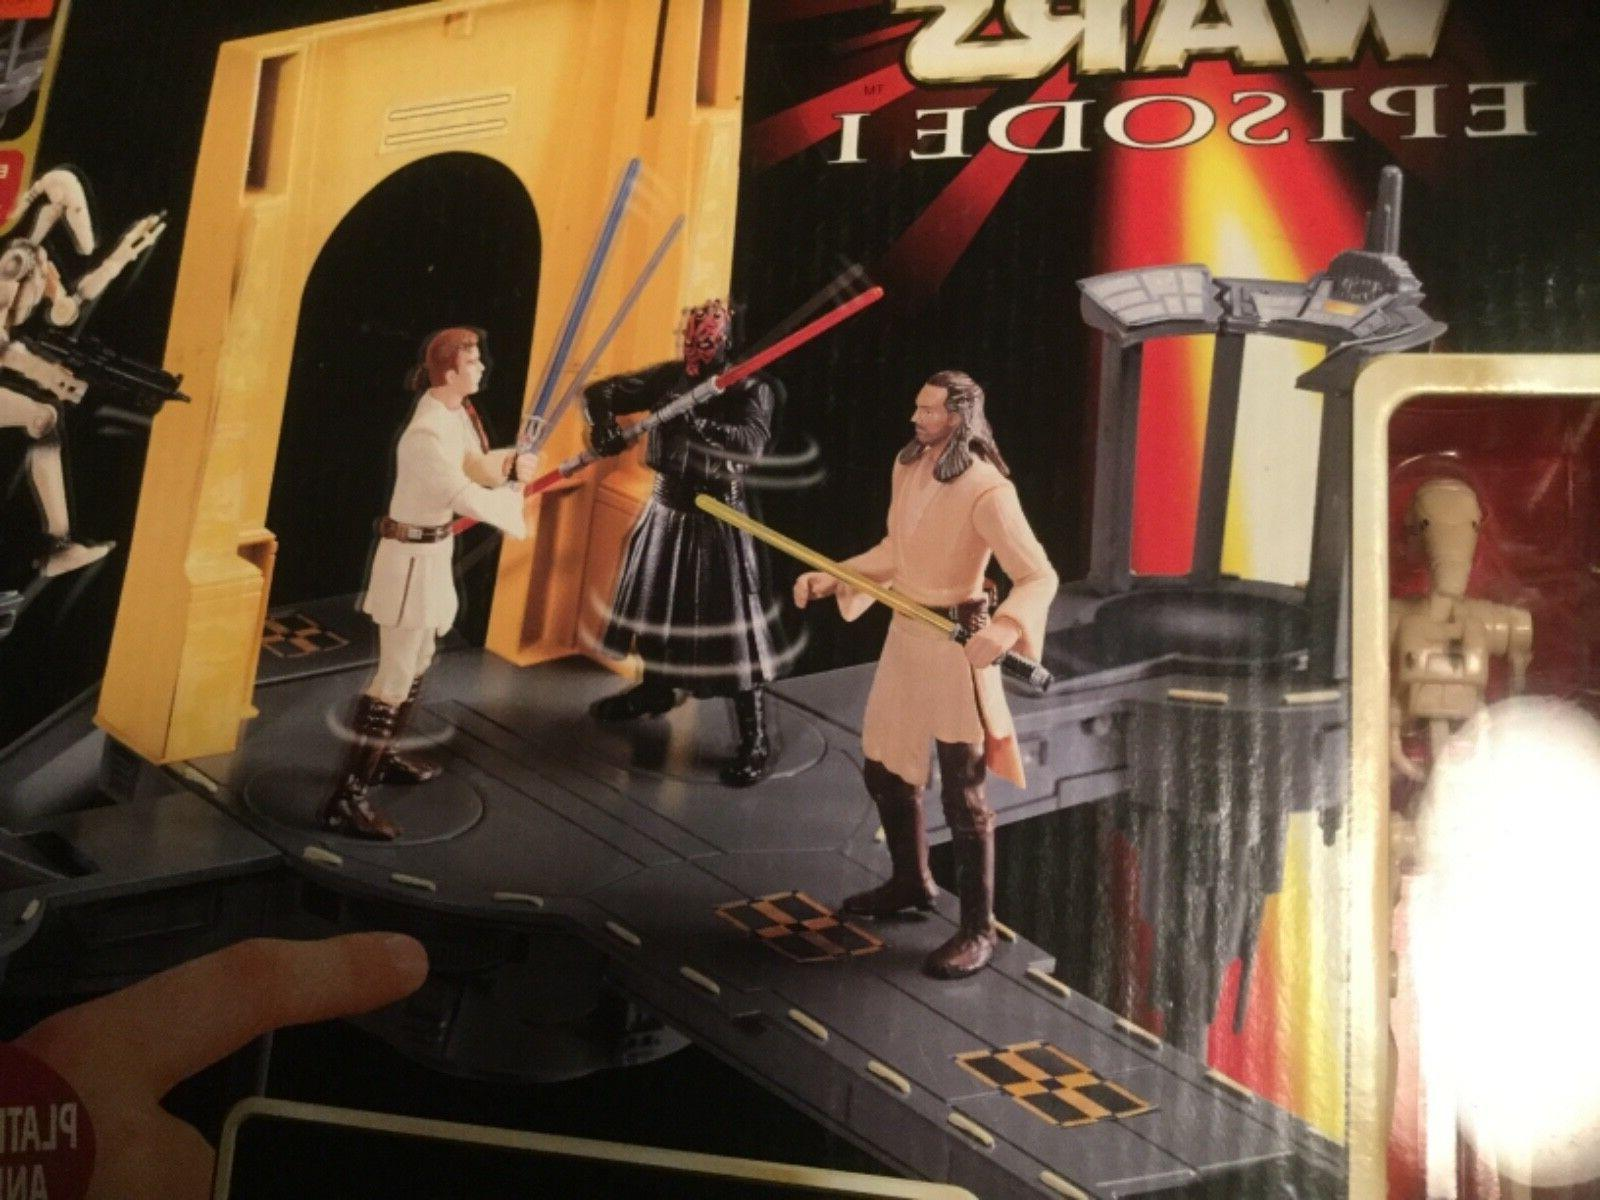 star wars theed generator complex lightsaber duel